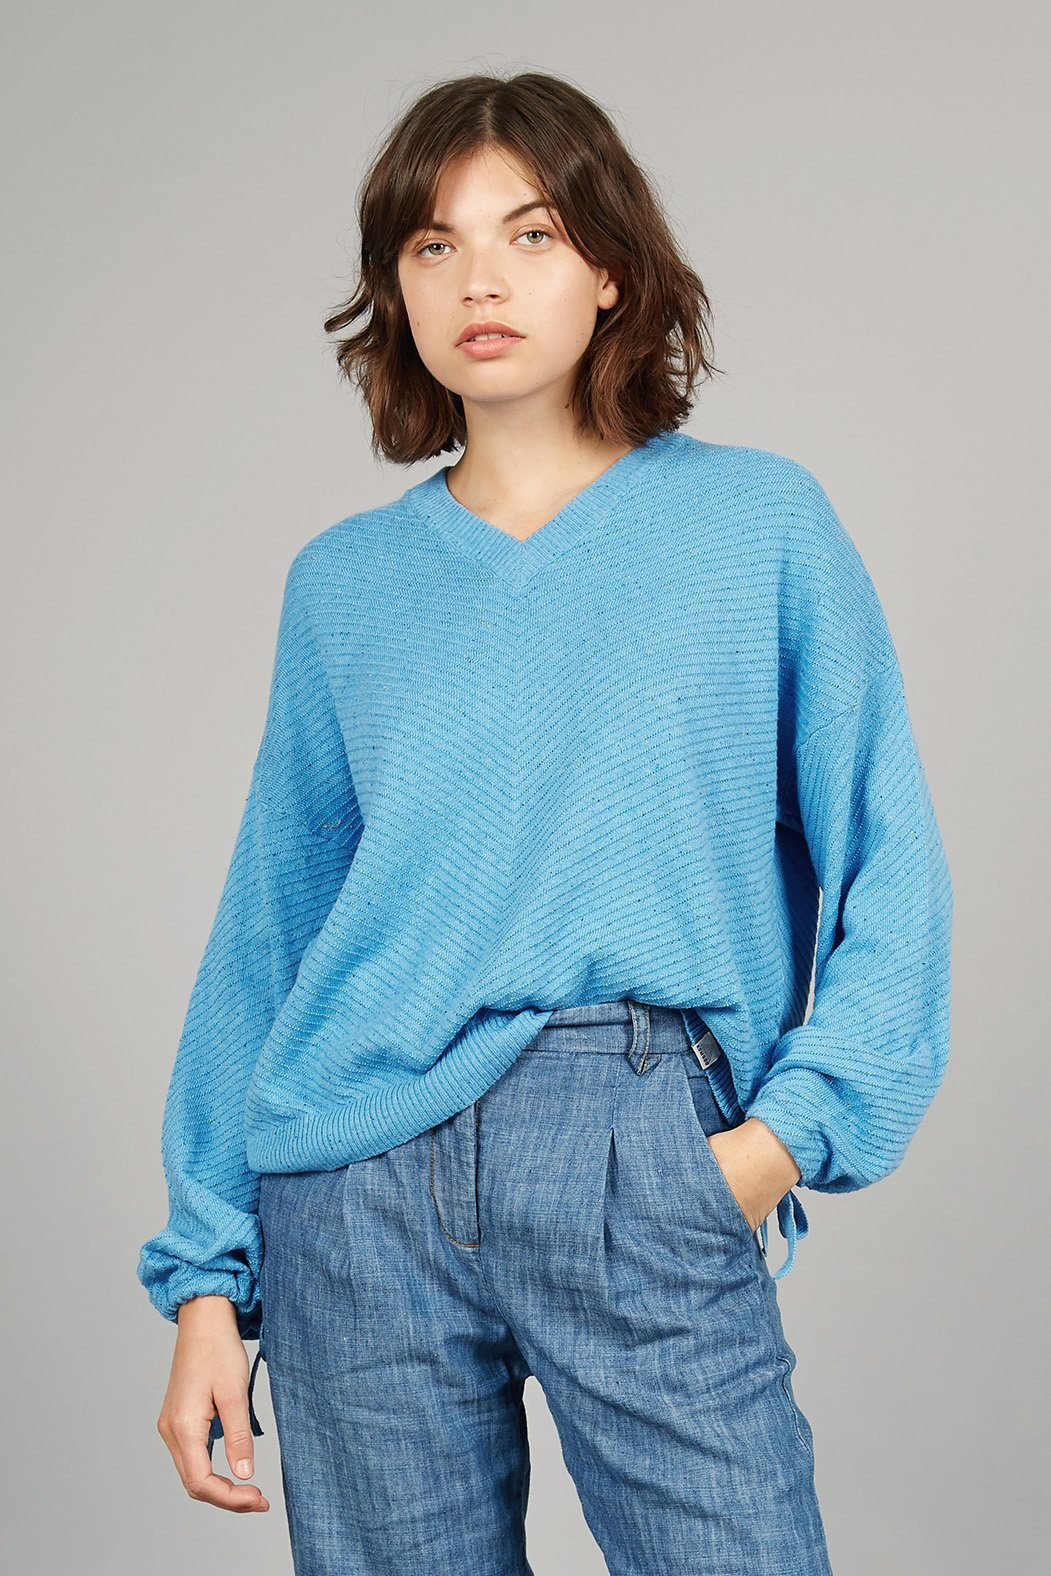 ROMA Organic Cotton Jumper Ocean - Komodo Fashion